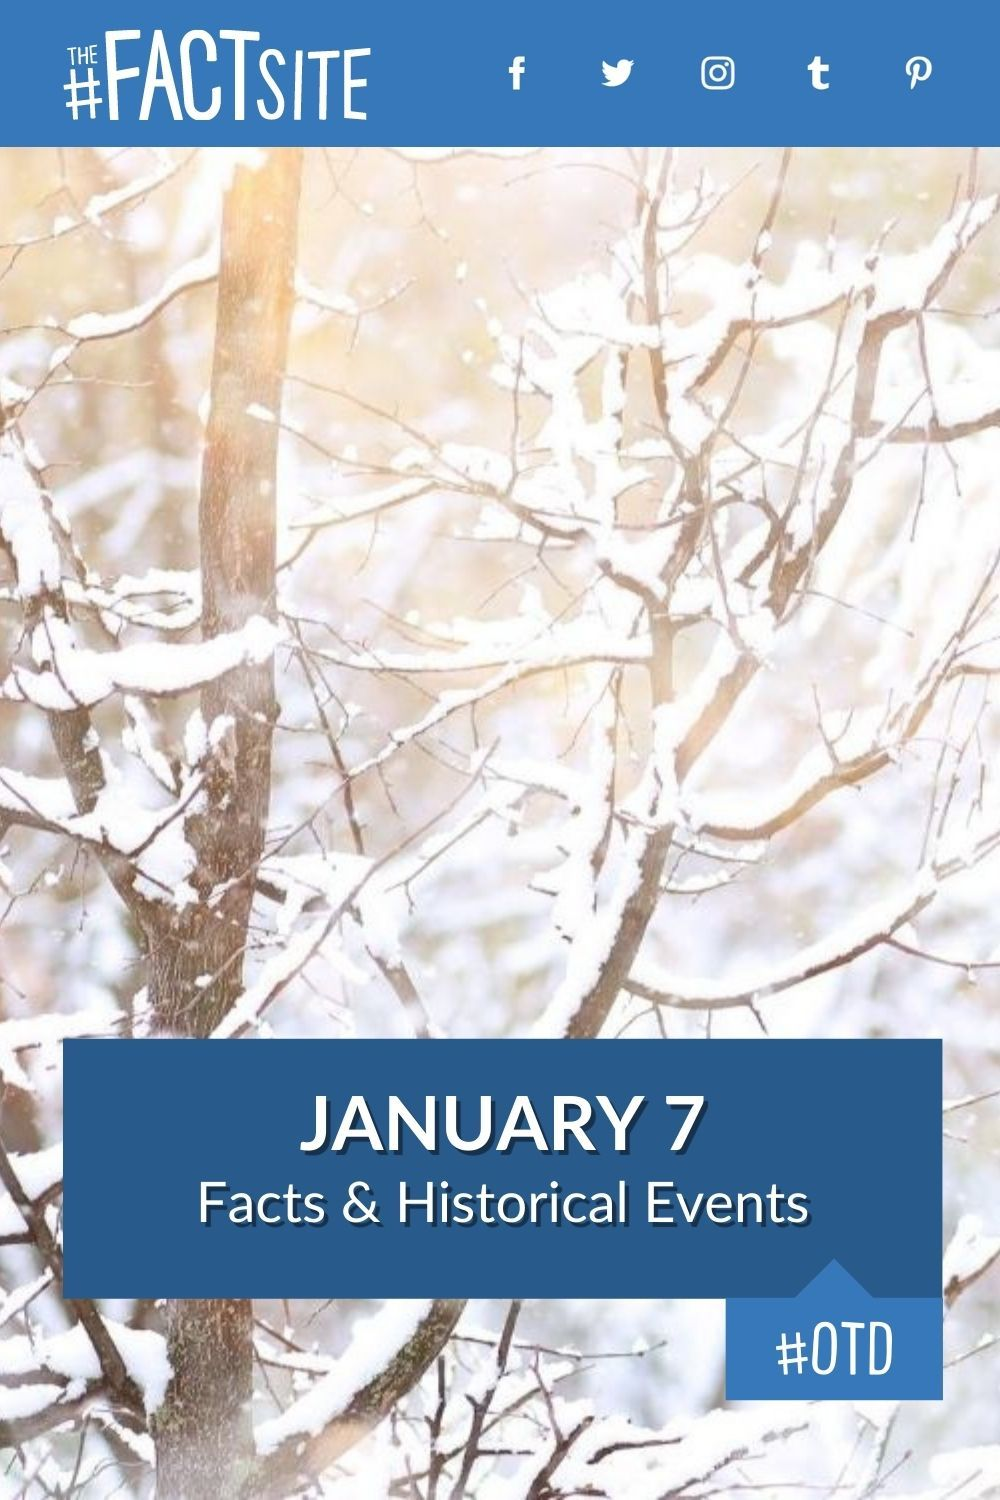 Facts & Historic Events That Happened on January 7